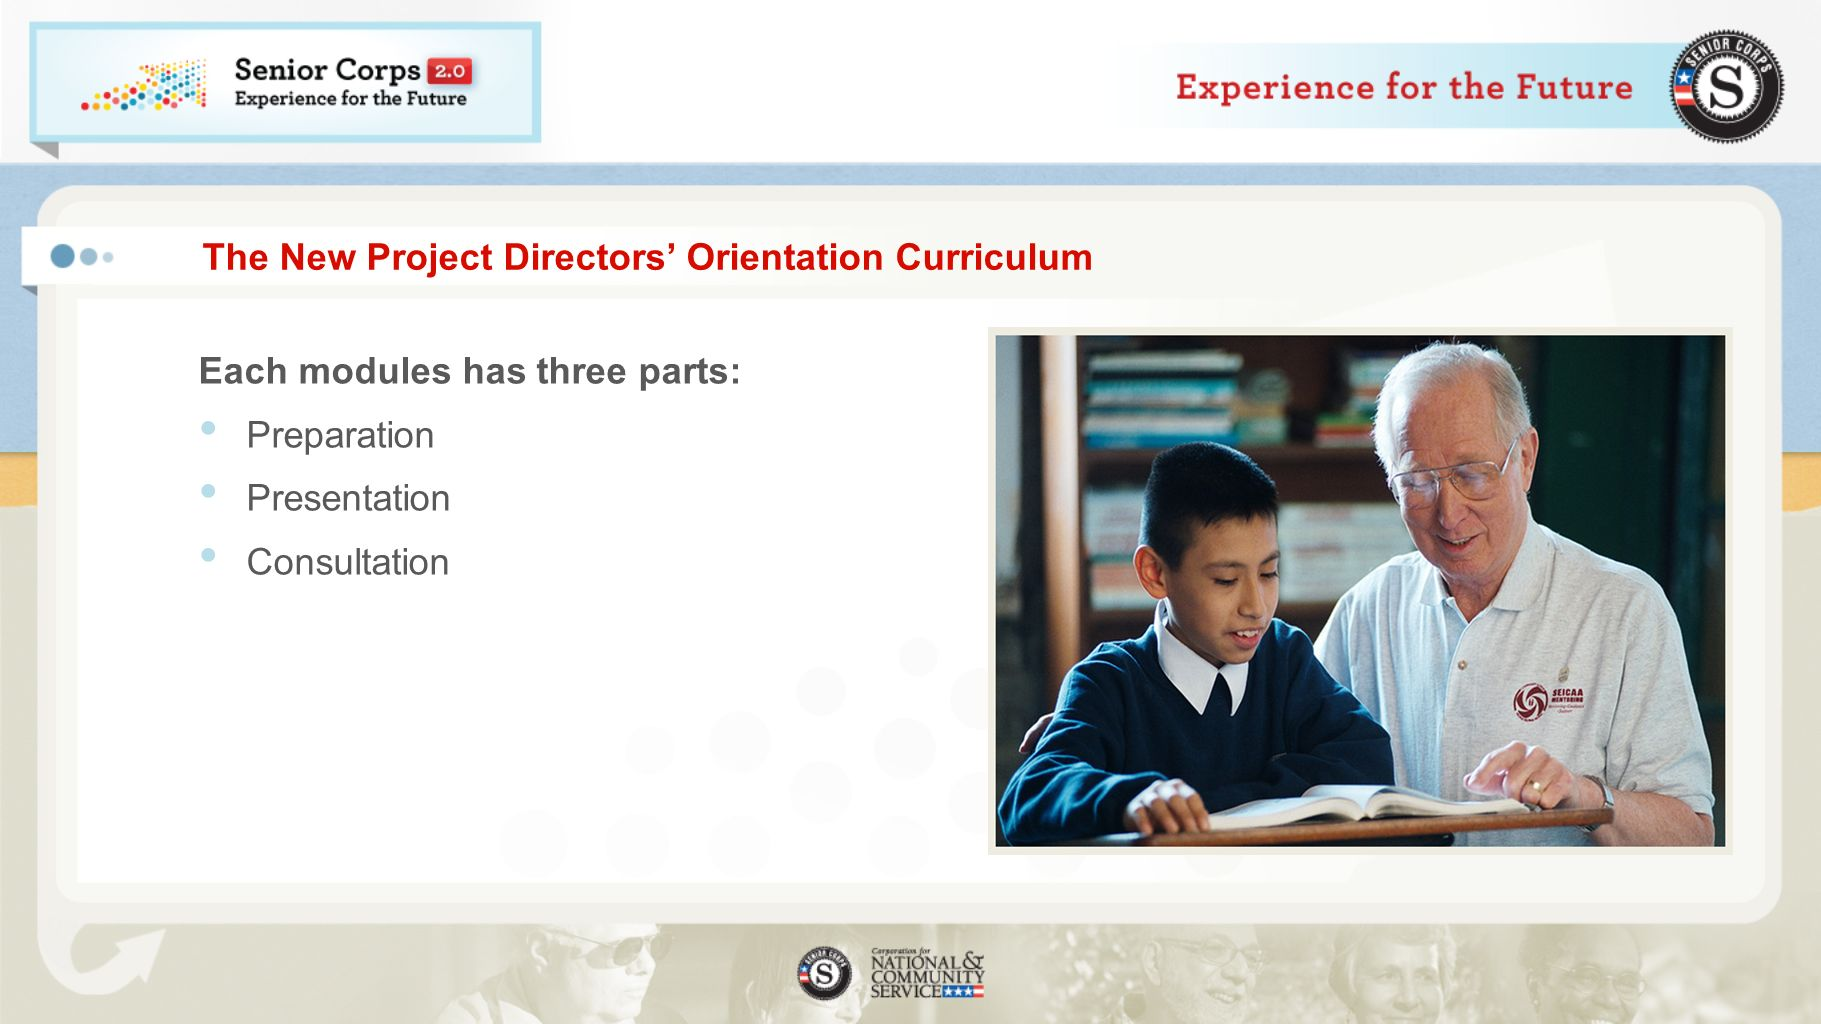 The New Project Directors' Orientation Curriculum